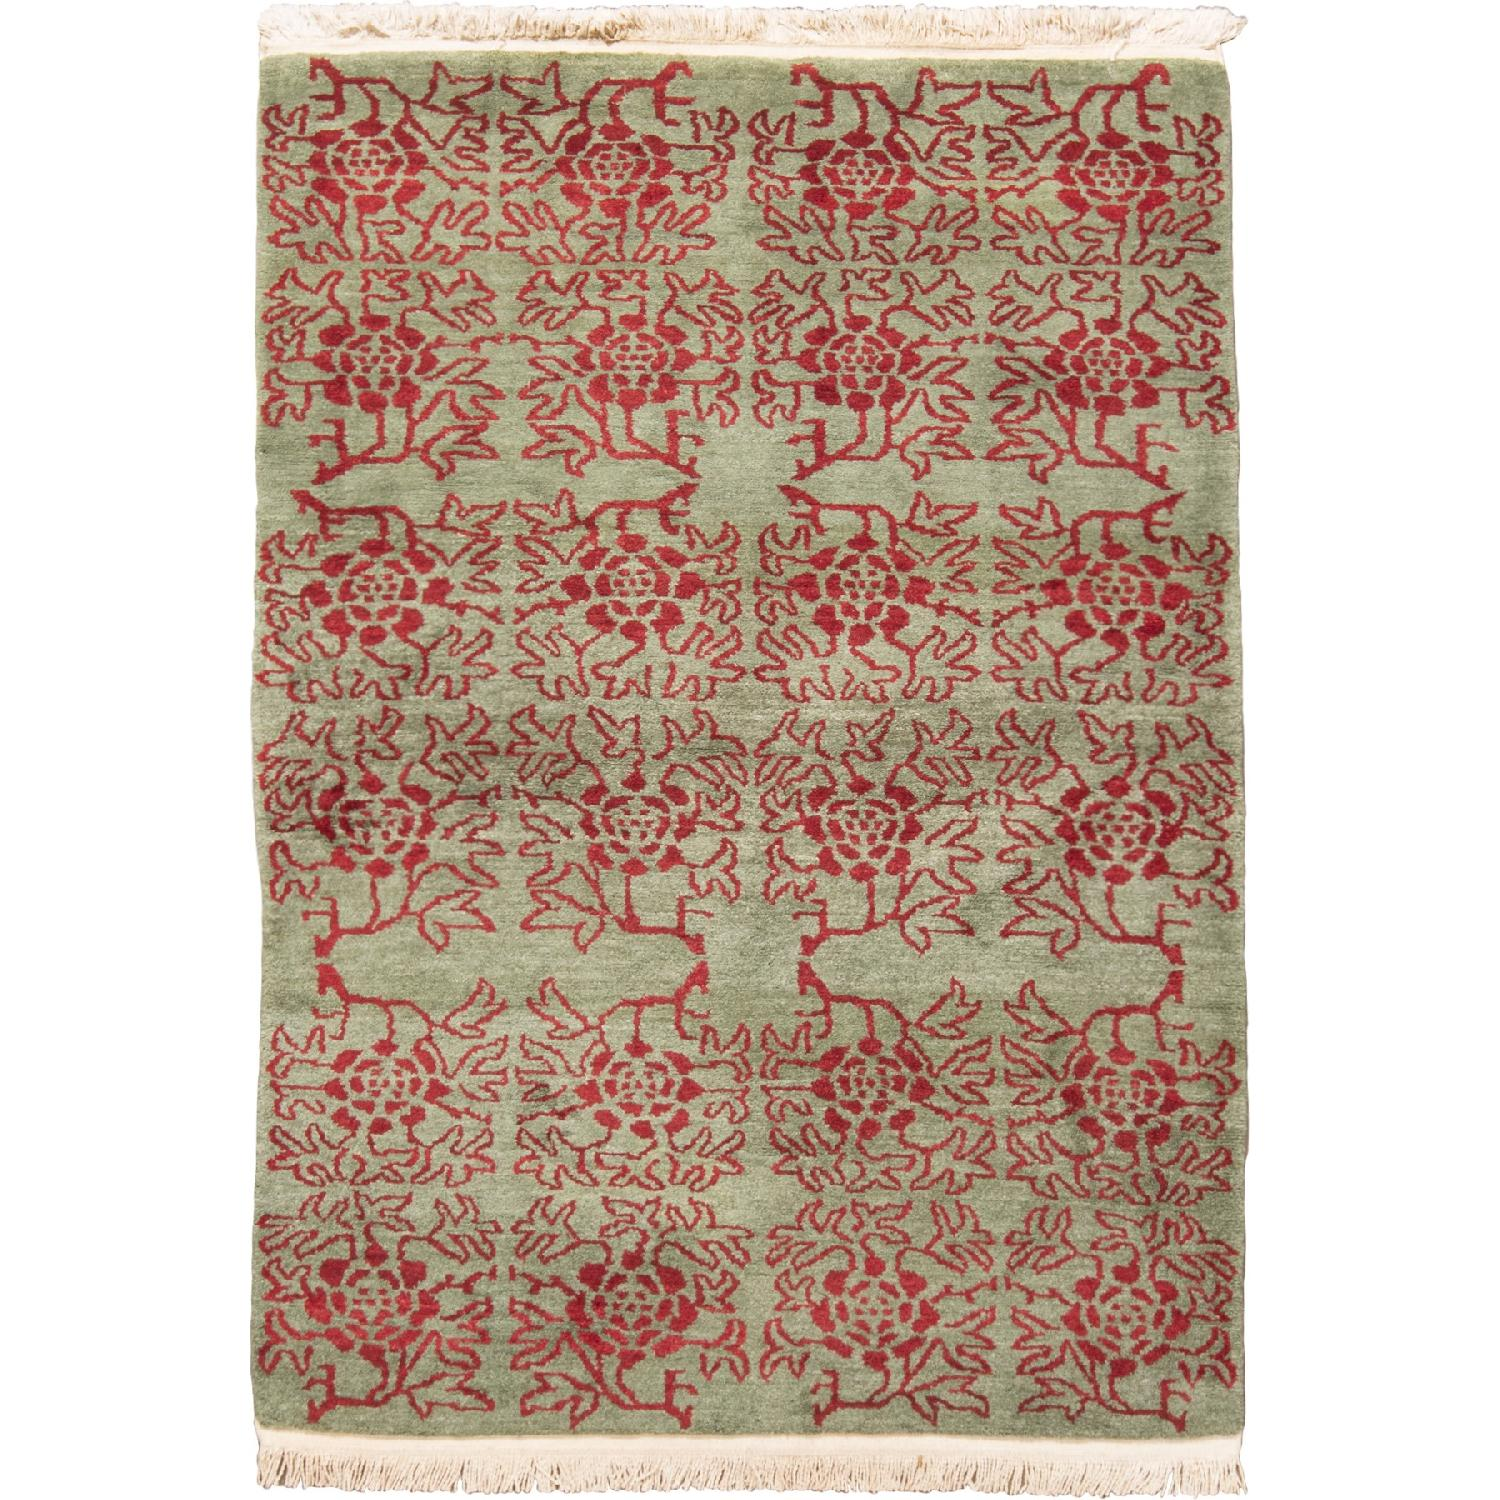 Transitional Green & Red Floral Wool Rug - image-0